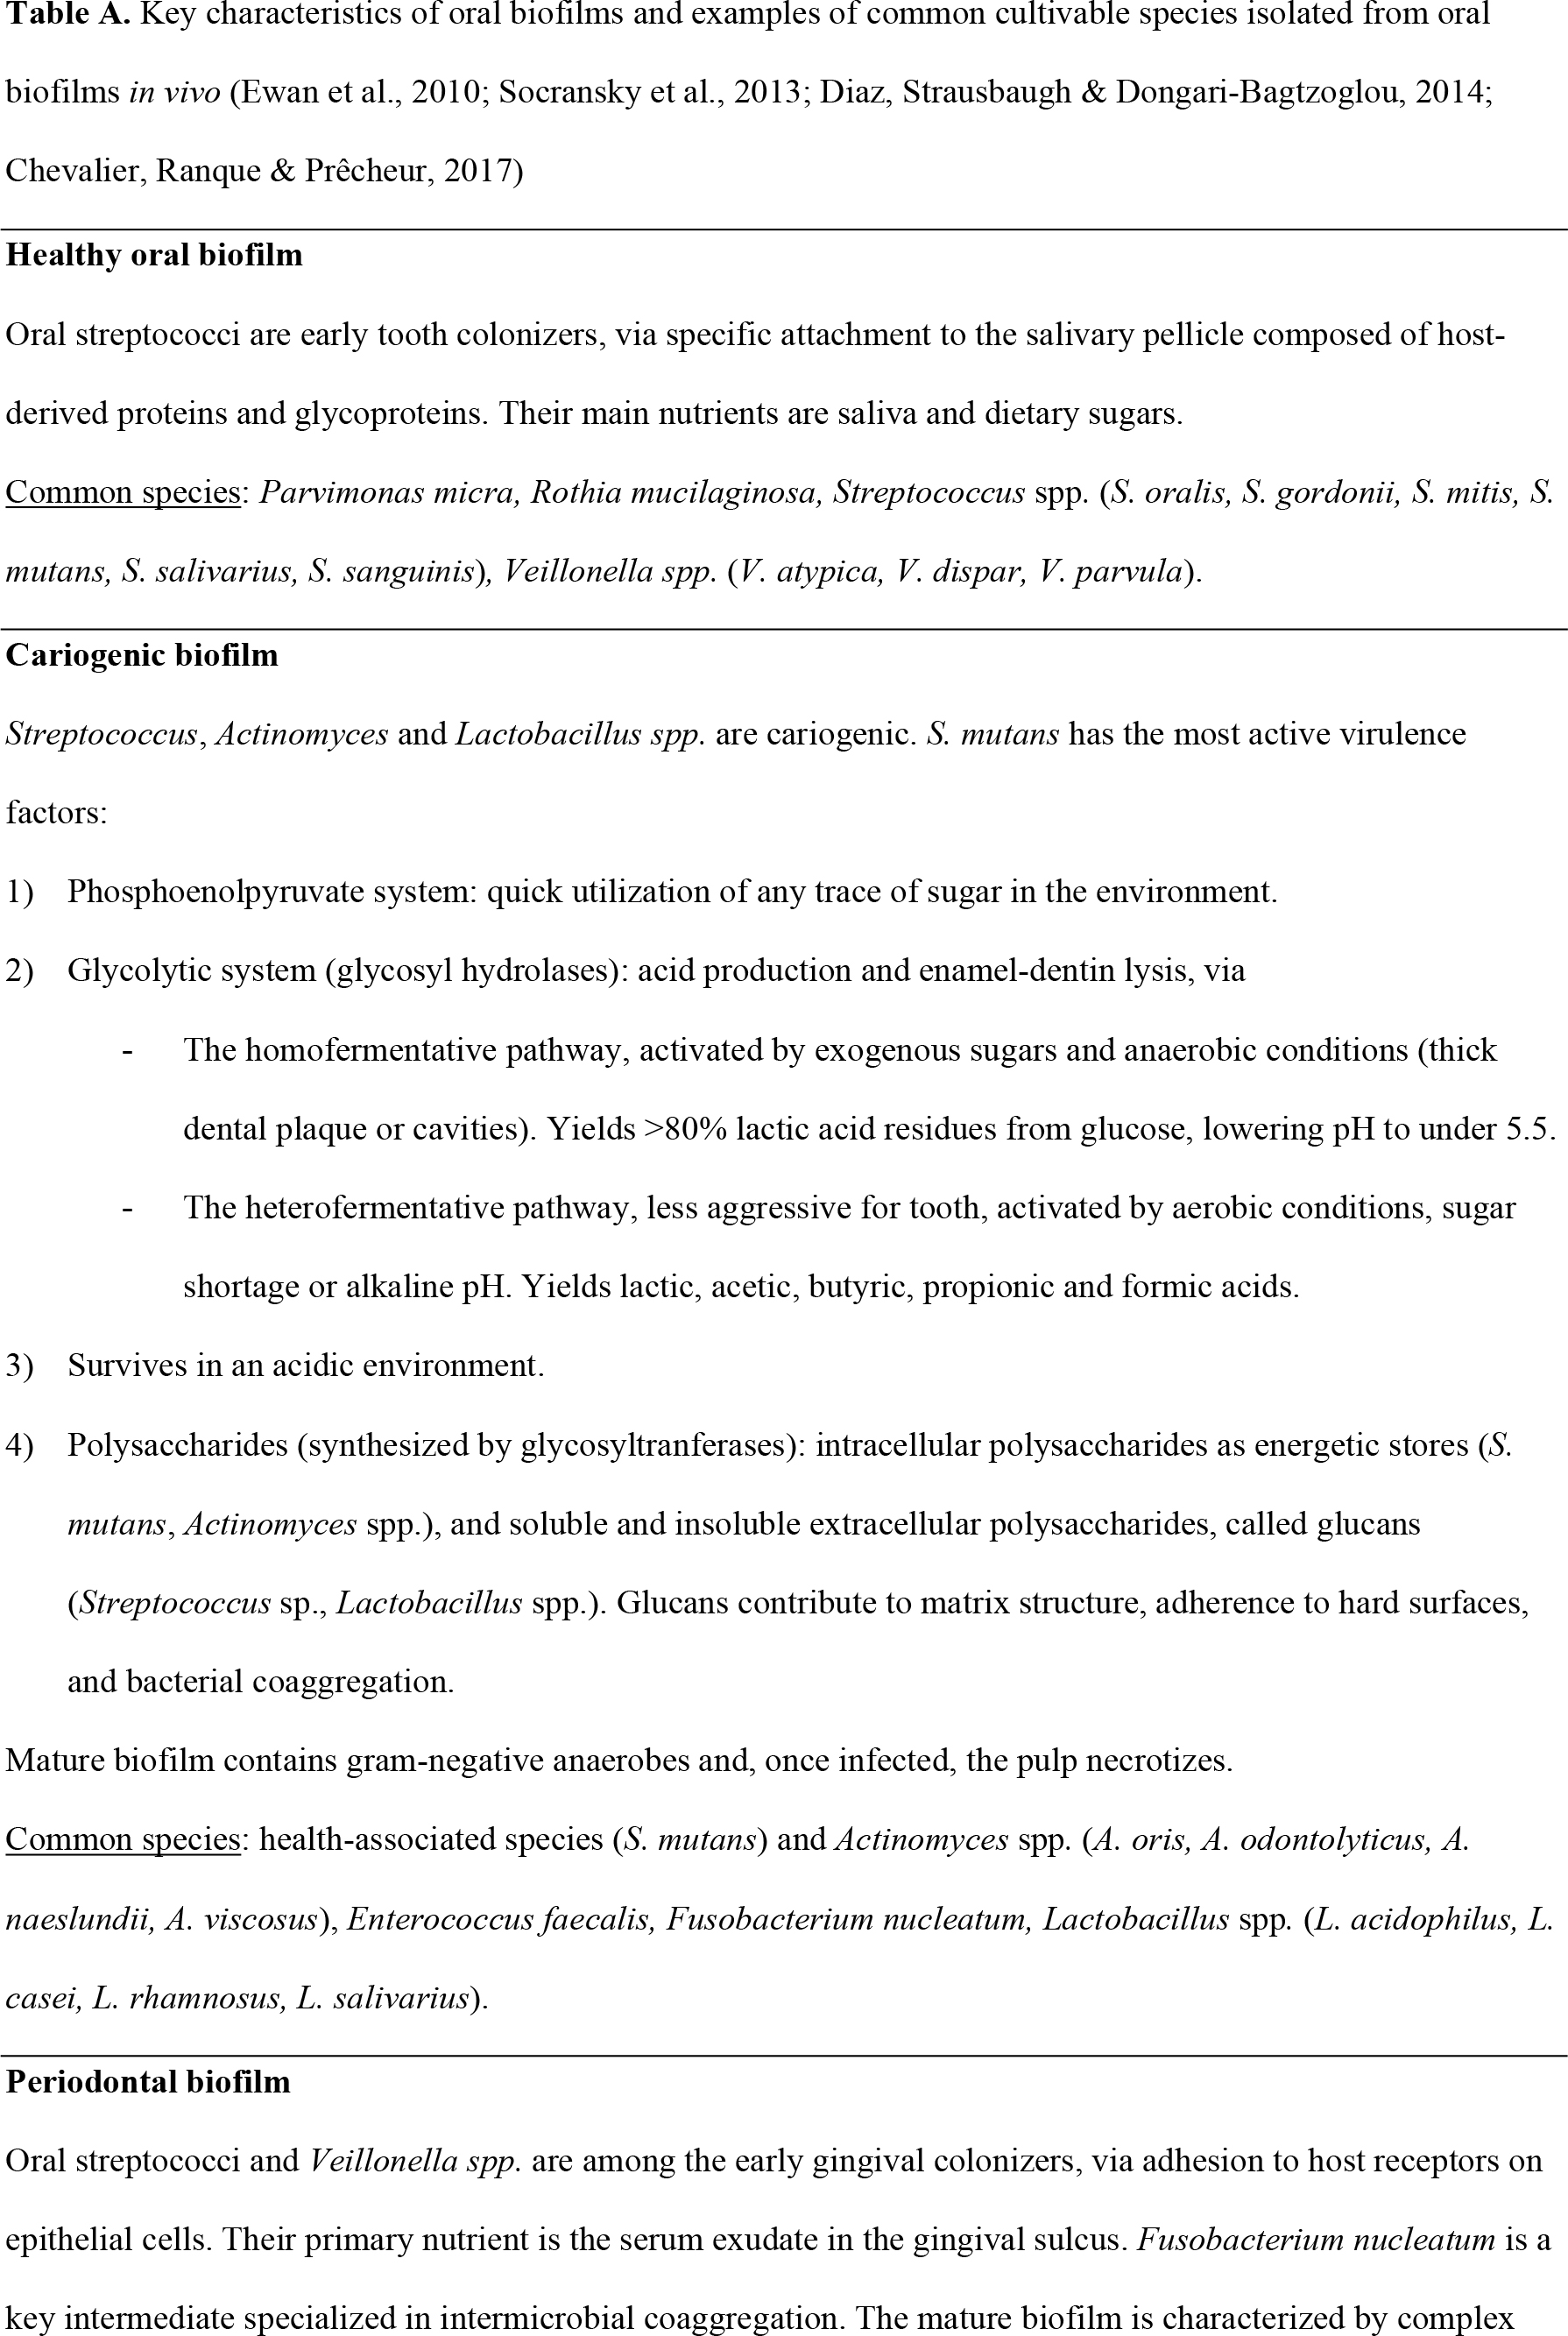 Key characteristics of oral biofilms and examples of common cultivable species isolated from oral biofilms in vivo (Ewan et al., 2010; Socransky et al., 2013; Diaz, Strausbaugh & Dongari-Bagtzoglou, 2014; Chevalier, Ranque & Prêcheur, 2017)